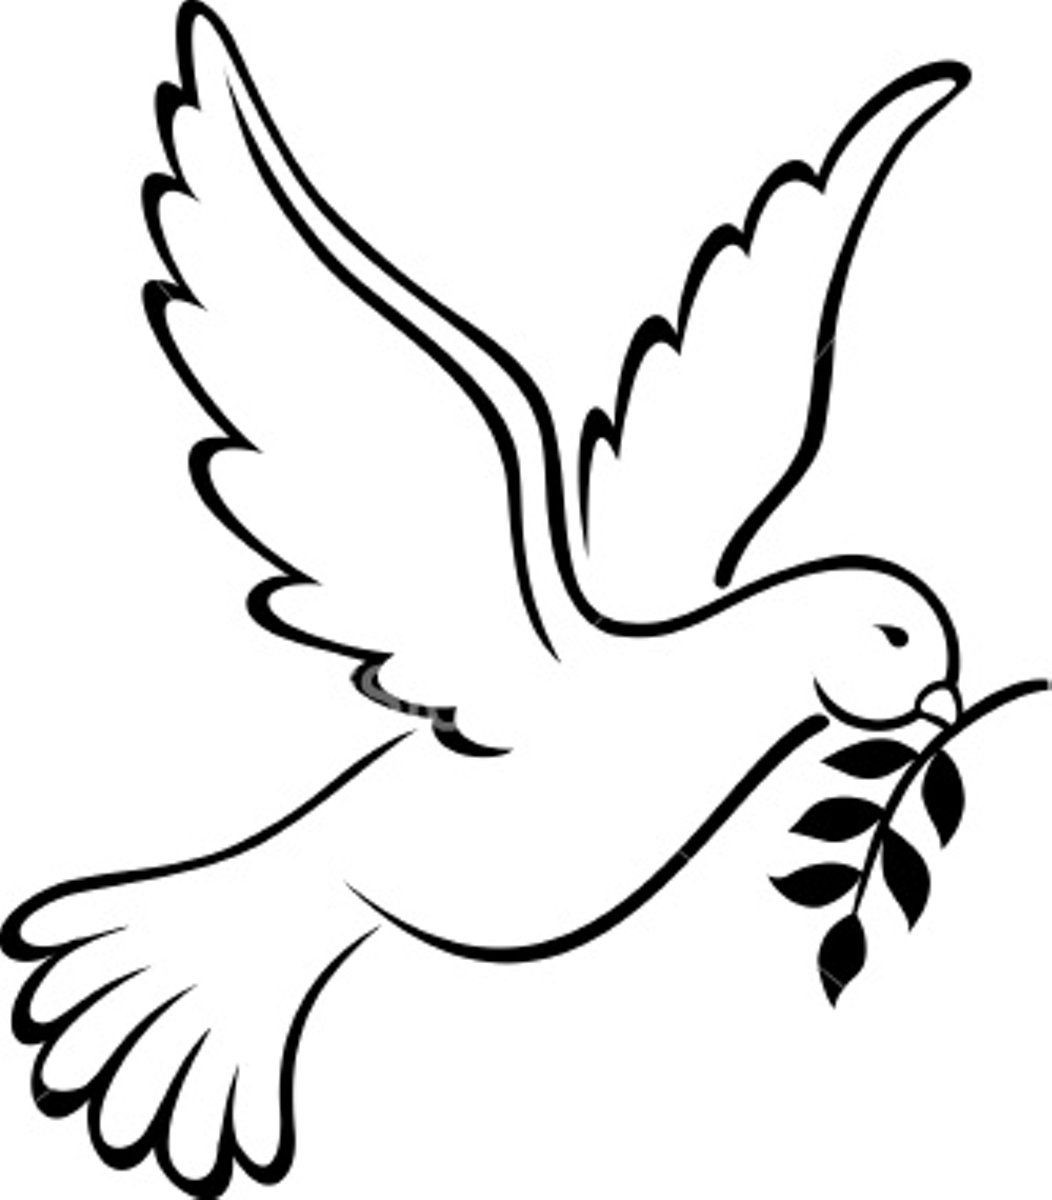 Descending Dove Clip Art.